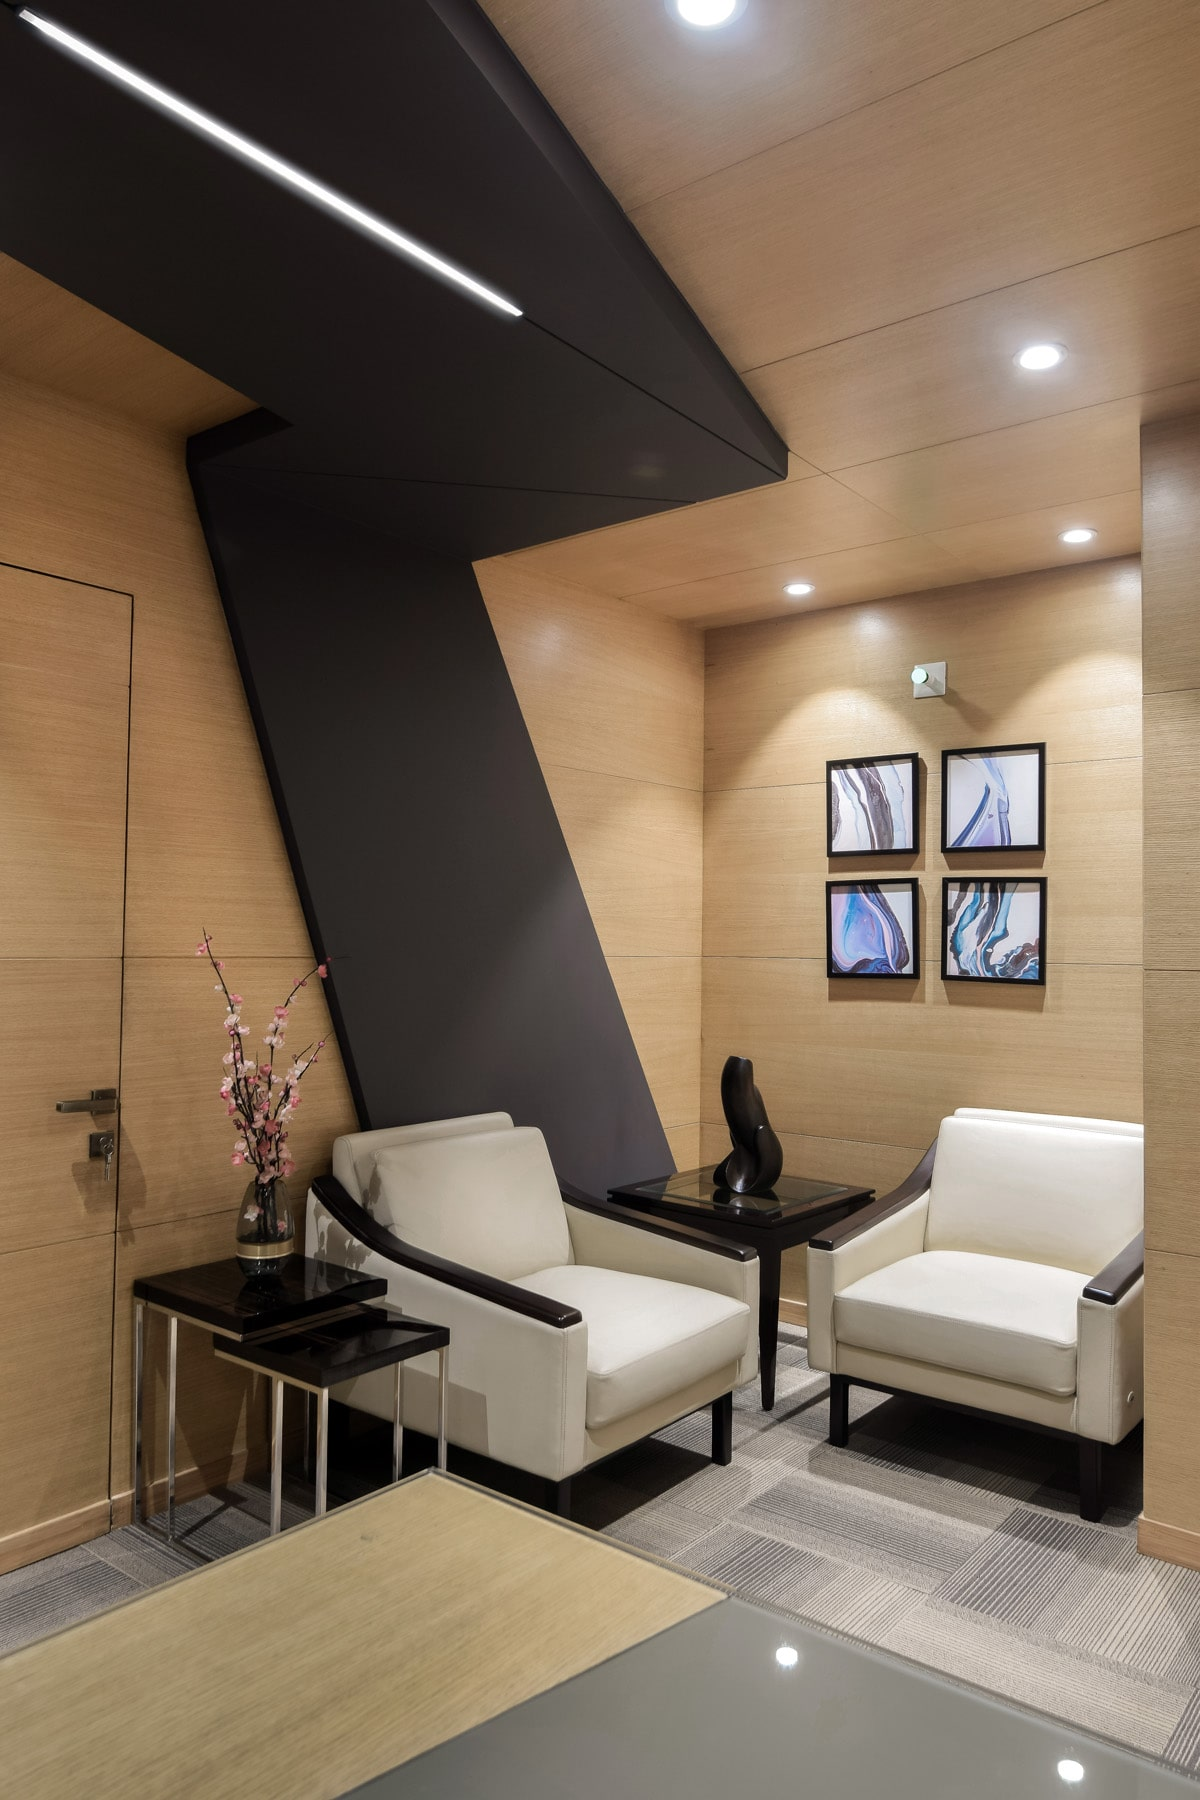 Director's room of Aakash Institute design by Conarch Architects